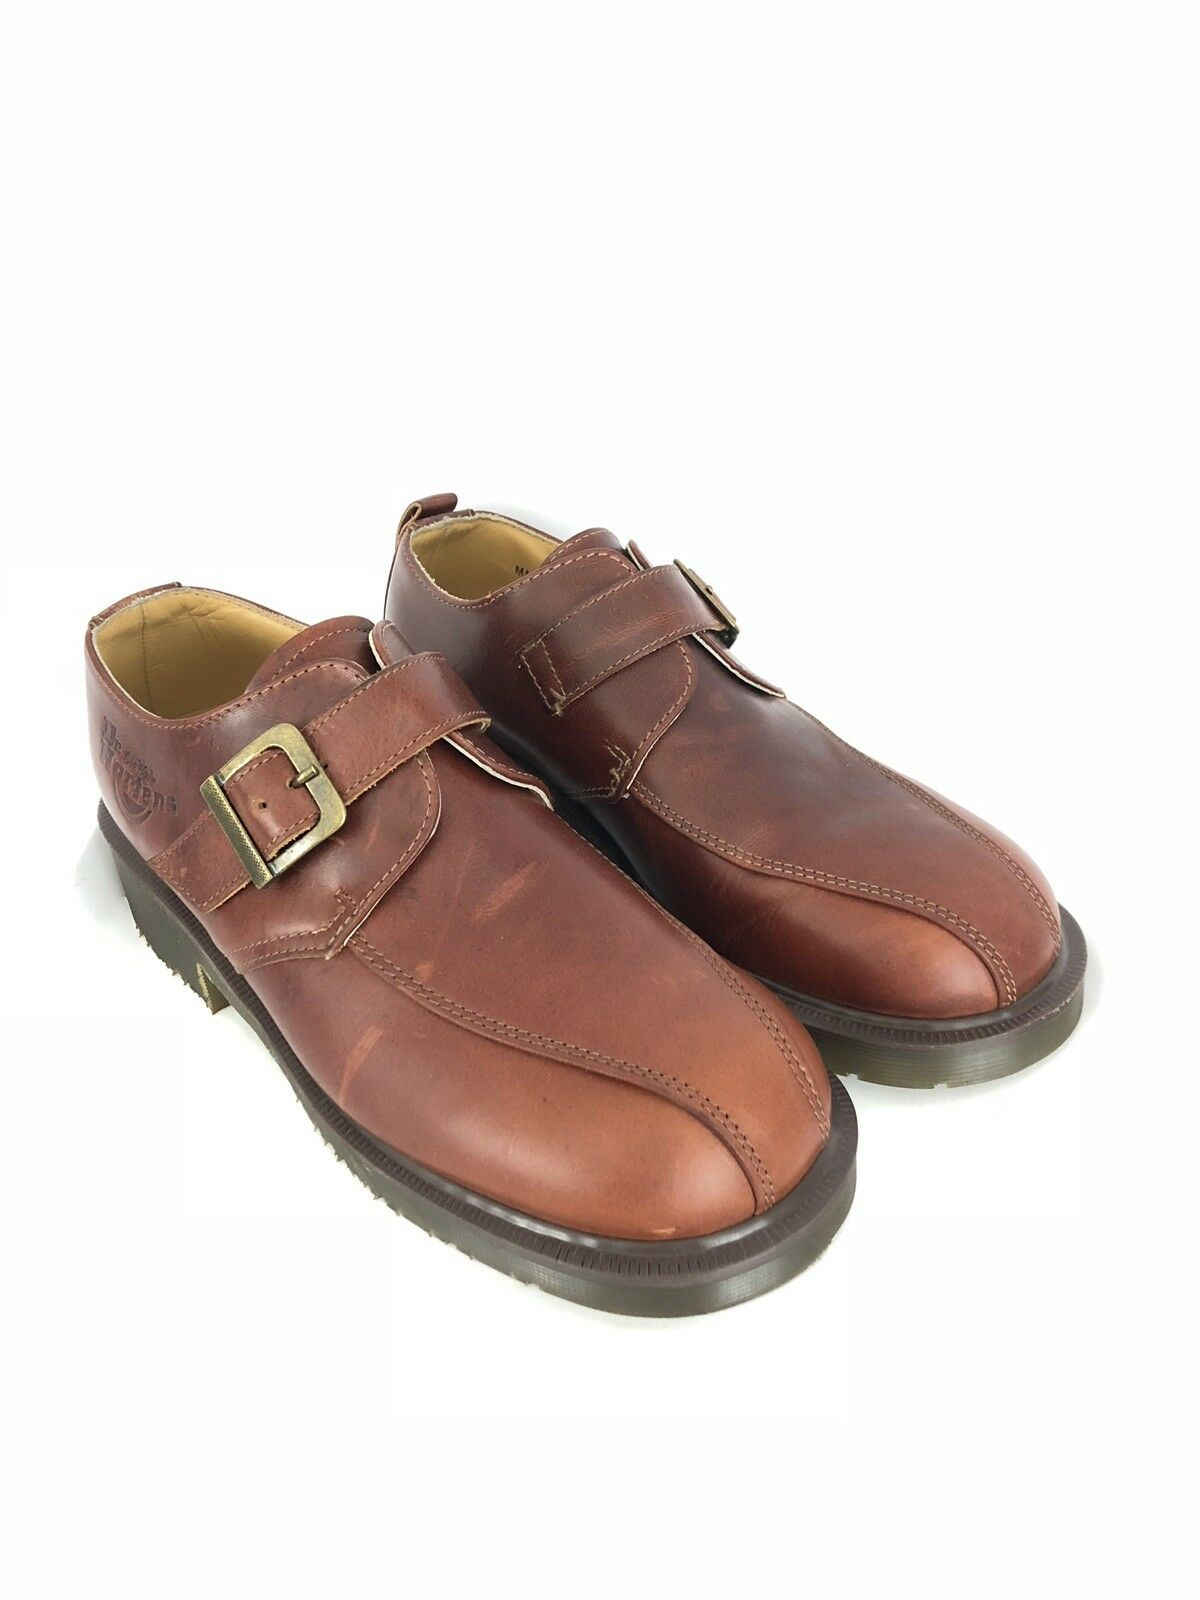 Dr Martens 8360 Brown Leather Size 7 Bicycle Toe Monk Strap Chunky Sole shoes